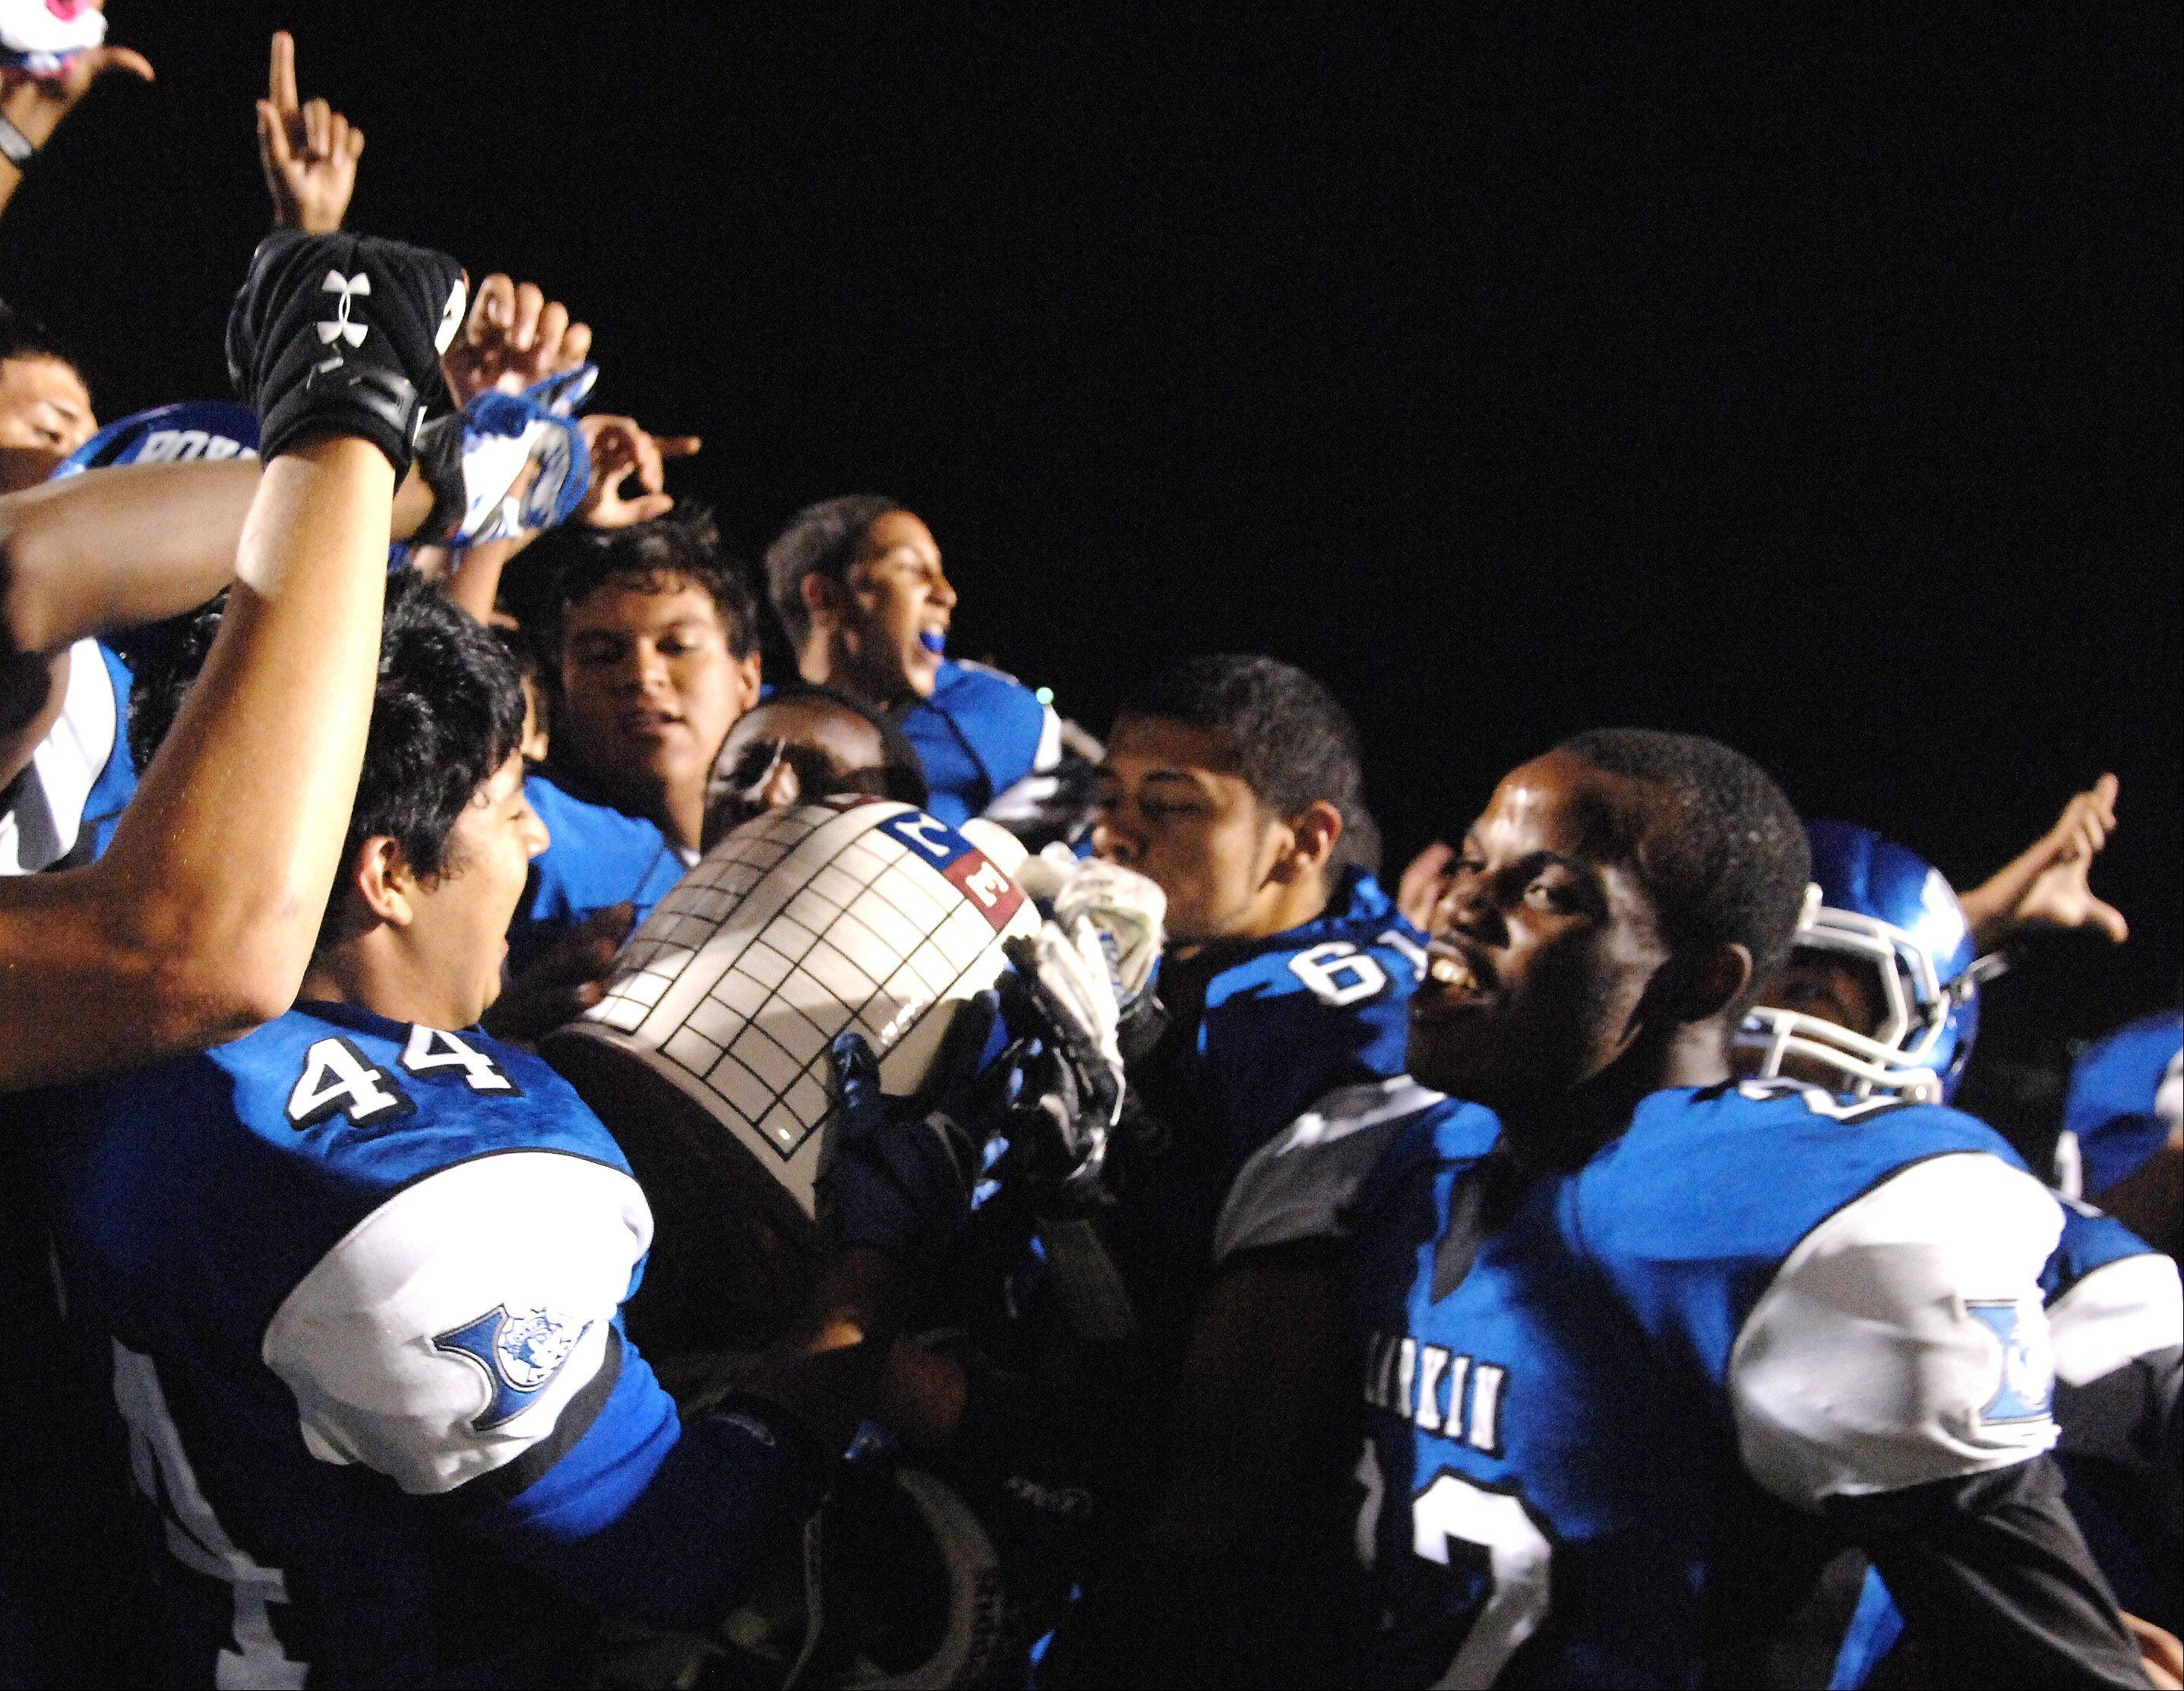 Larkin players celebrate with the Town Jug following their win over Elgin during Friday night's game at Elgin High School.